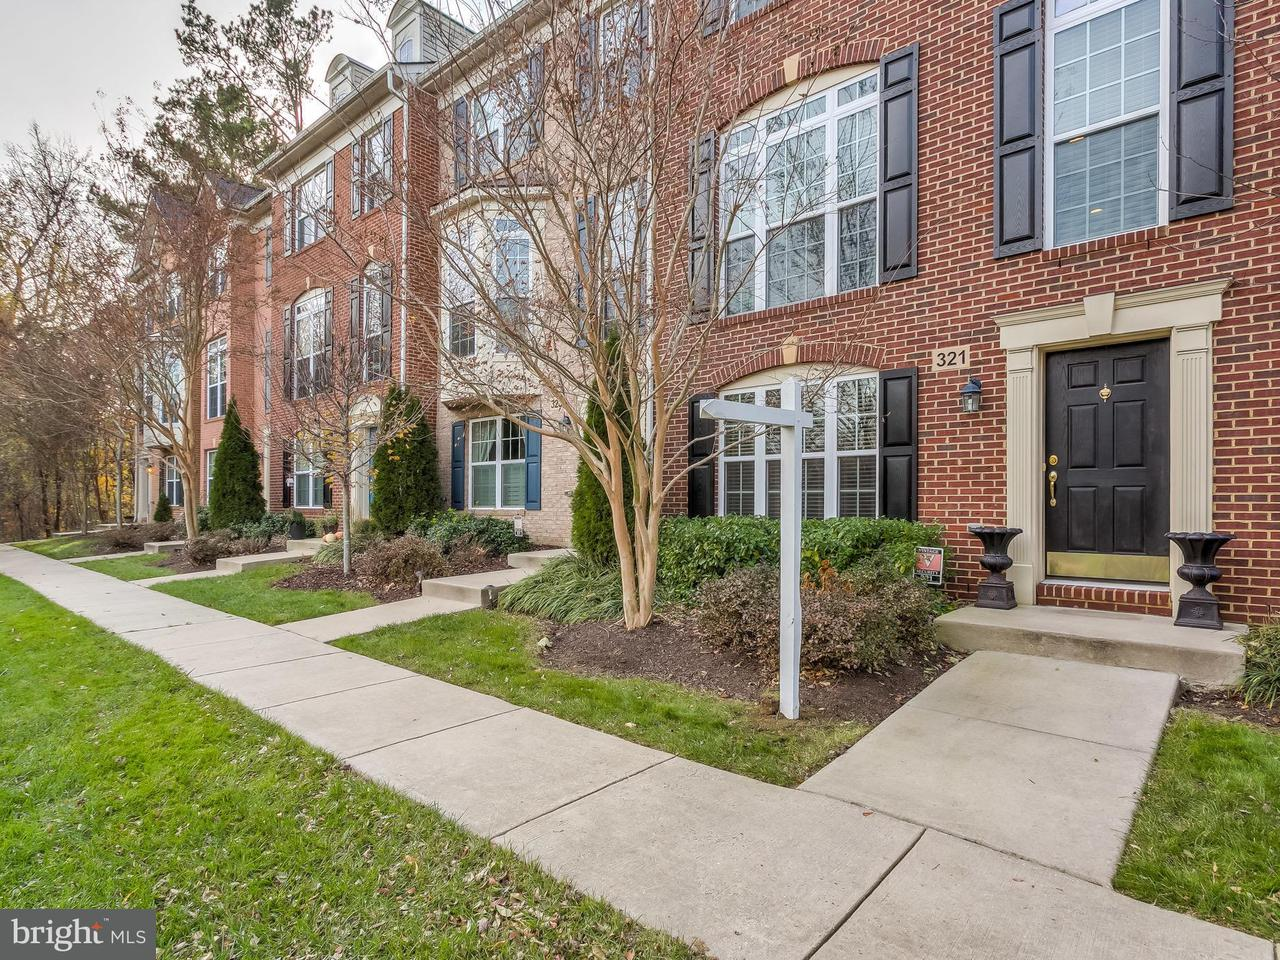 Townhouse for Sale at 321 BULWARK ALY 321 BULWARK ALY Annapolis, Maryland 21401 United States